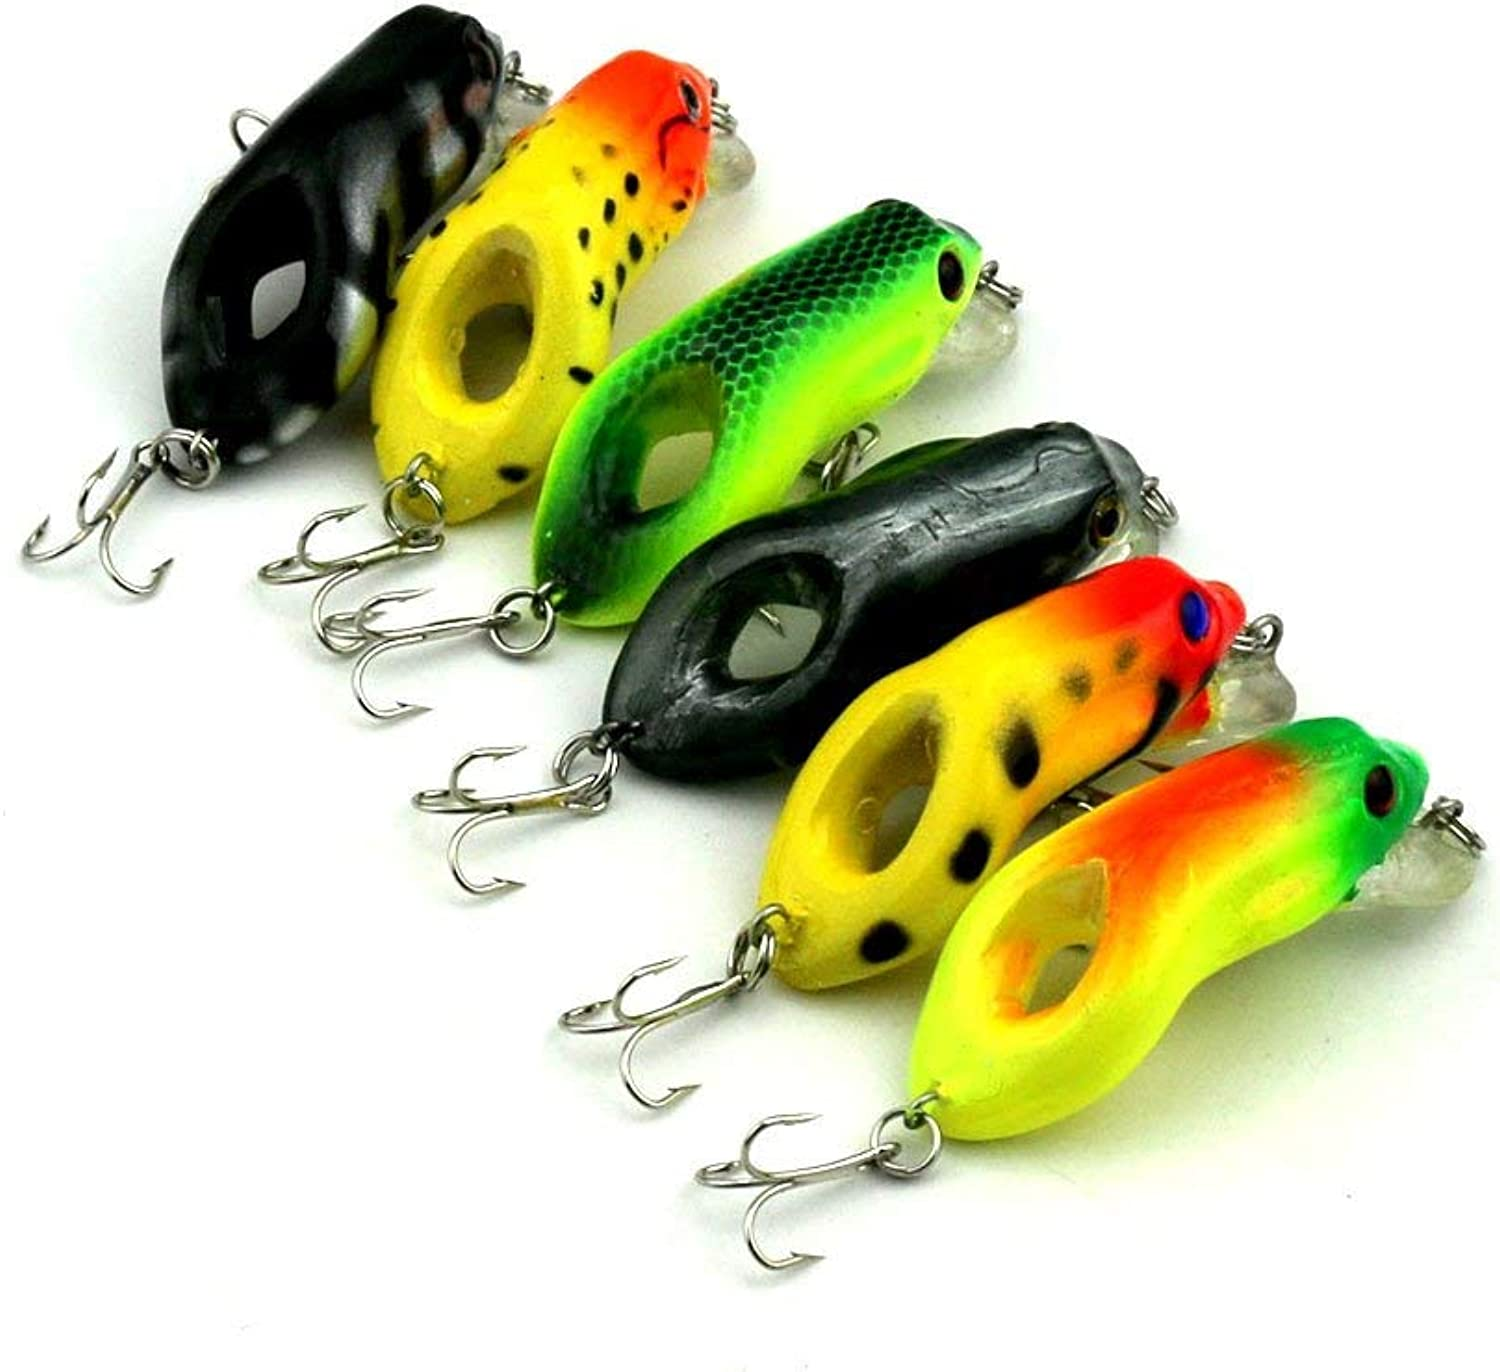 6 colors in one Set   6pcs Set 5.5cm 2.17in 8.7g 0.31oz Hard Fishing Lure Salmon Hole Artificial Fish Bait with Sharp Barbed Hooks Yellow Black Green